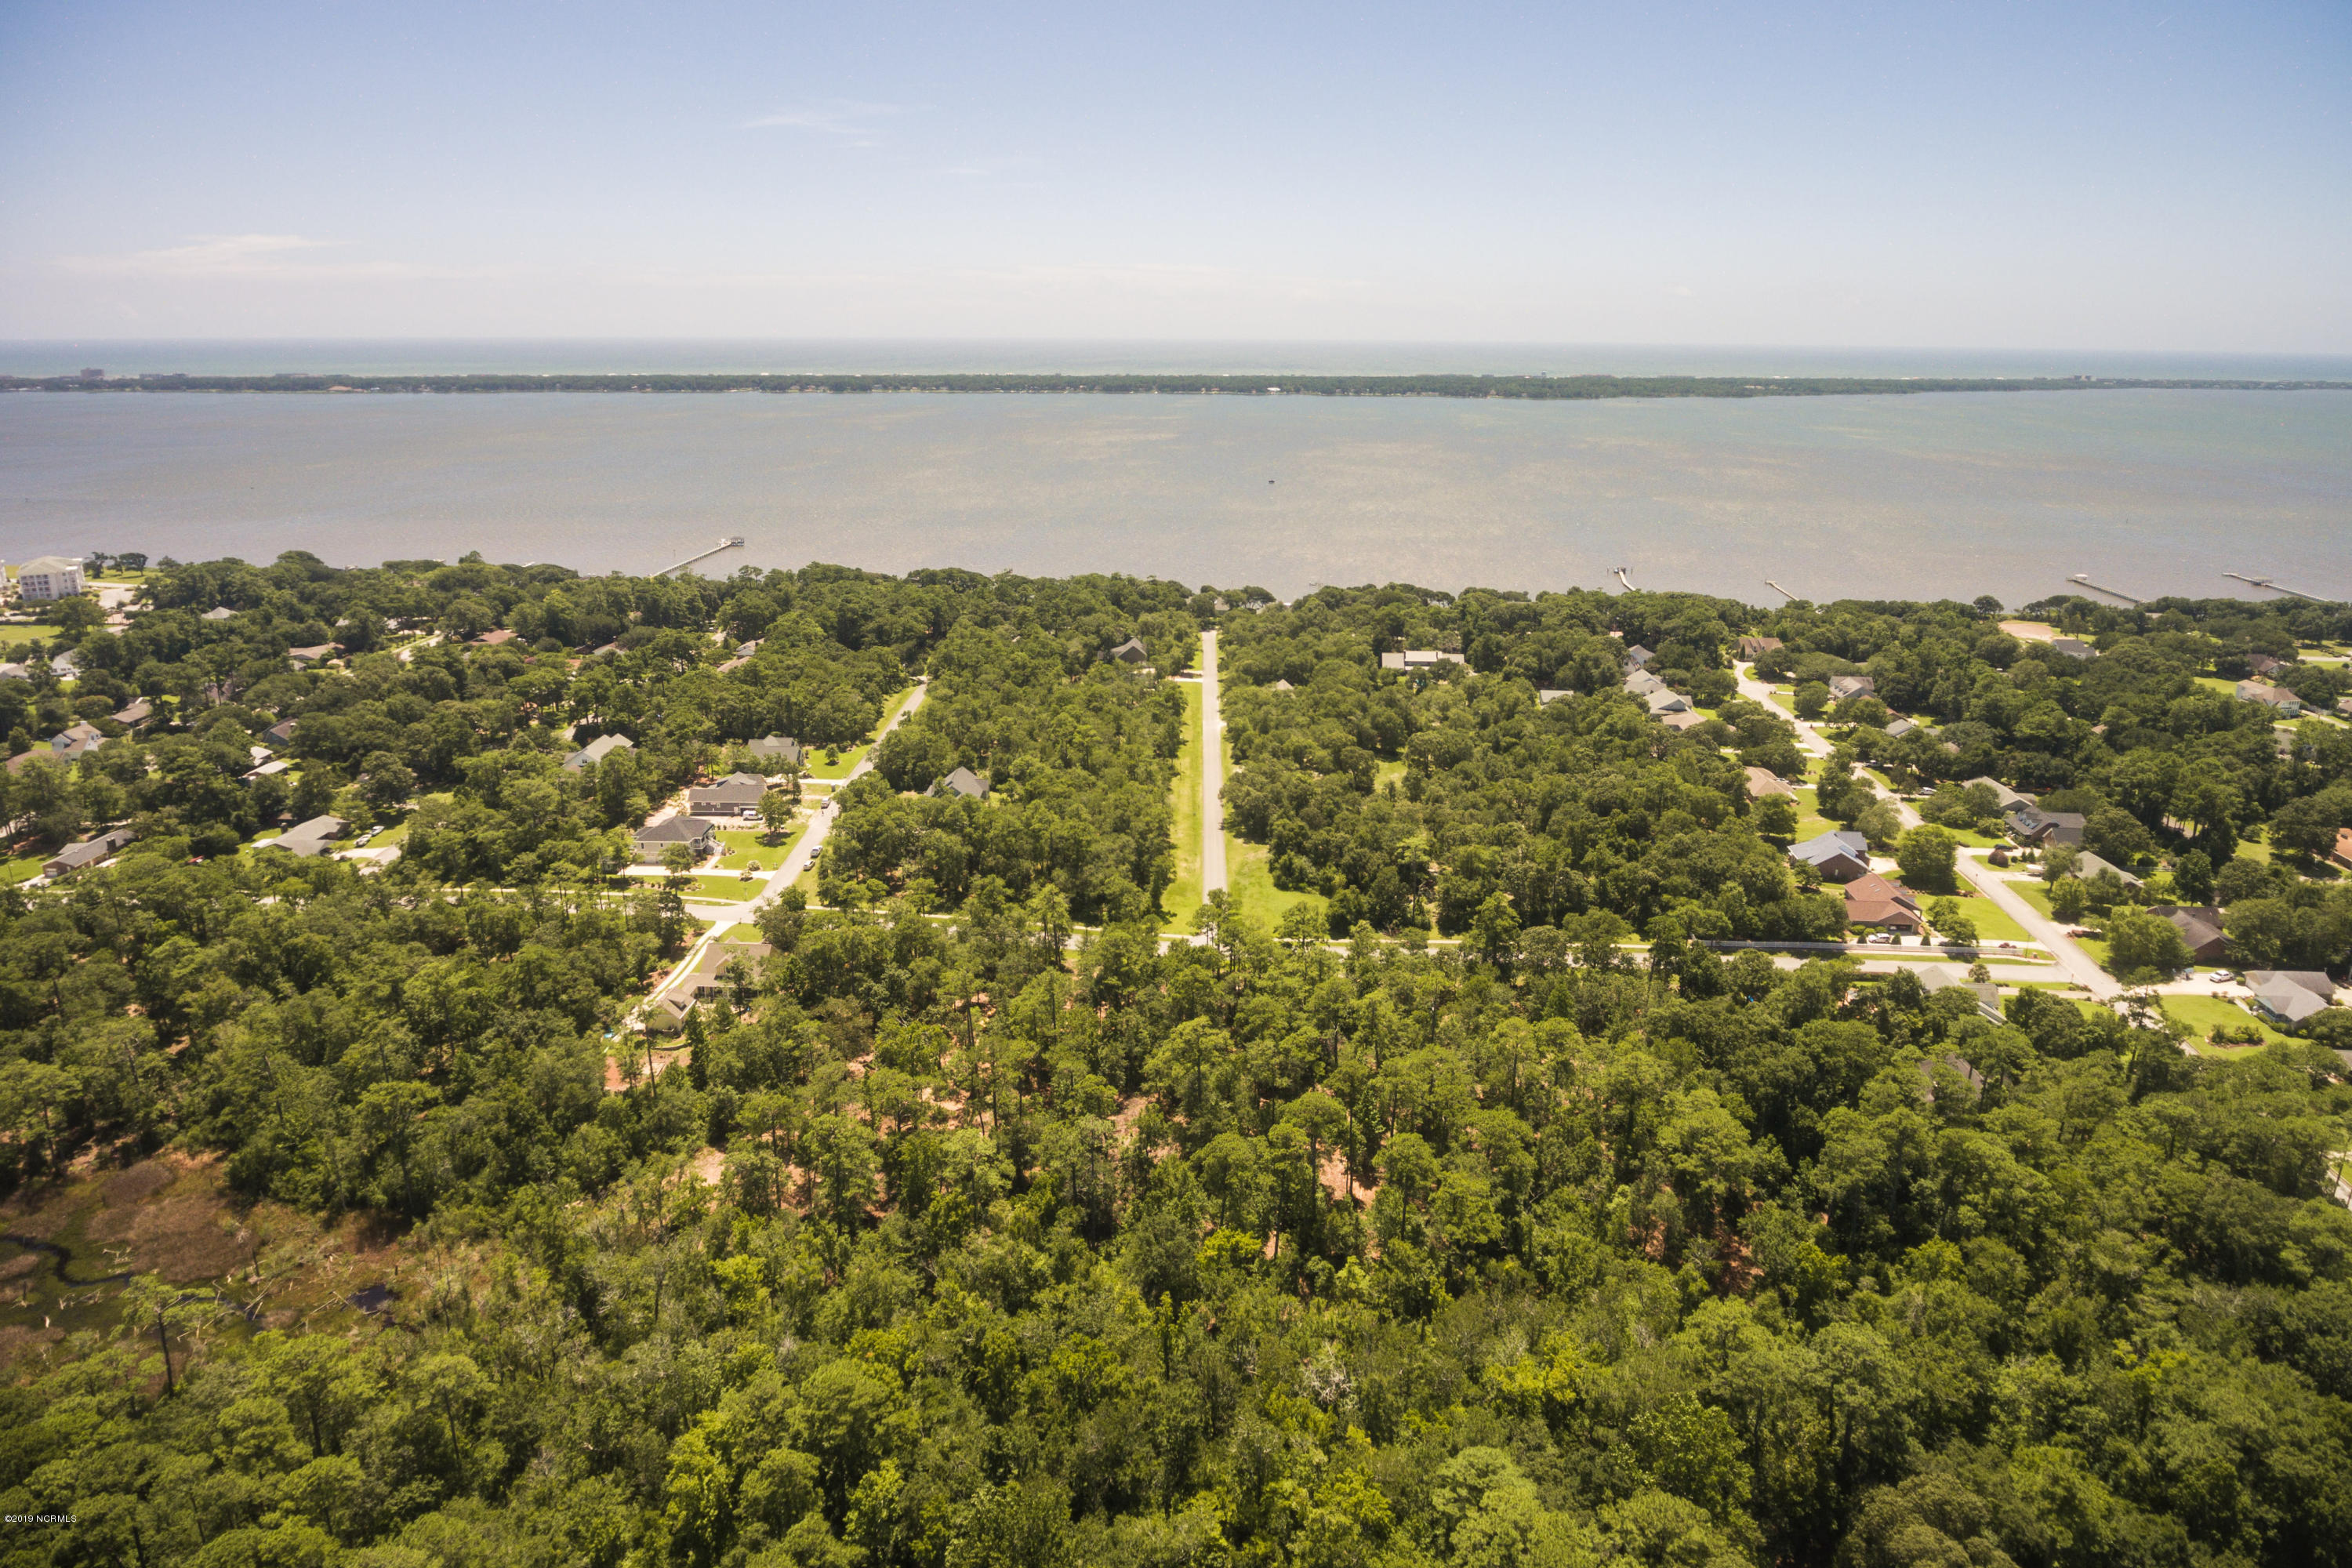 218 Spooners Street, Morehead City, North Carolina 28557, ,Residential land,For sale,Spooners,100150828